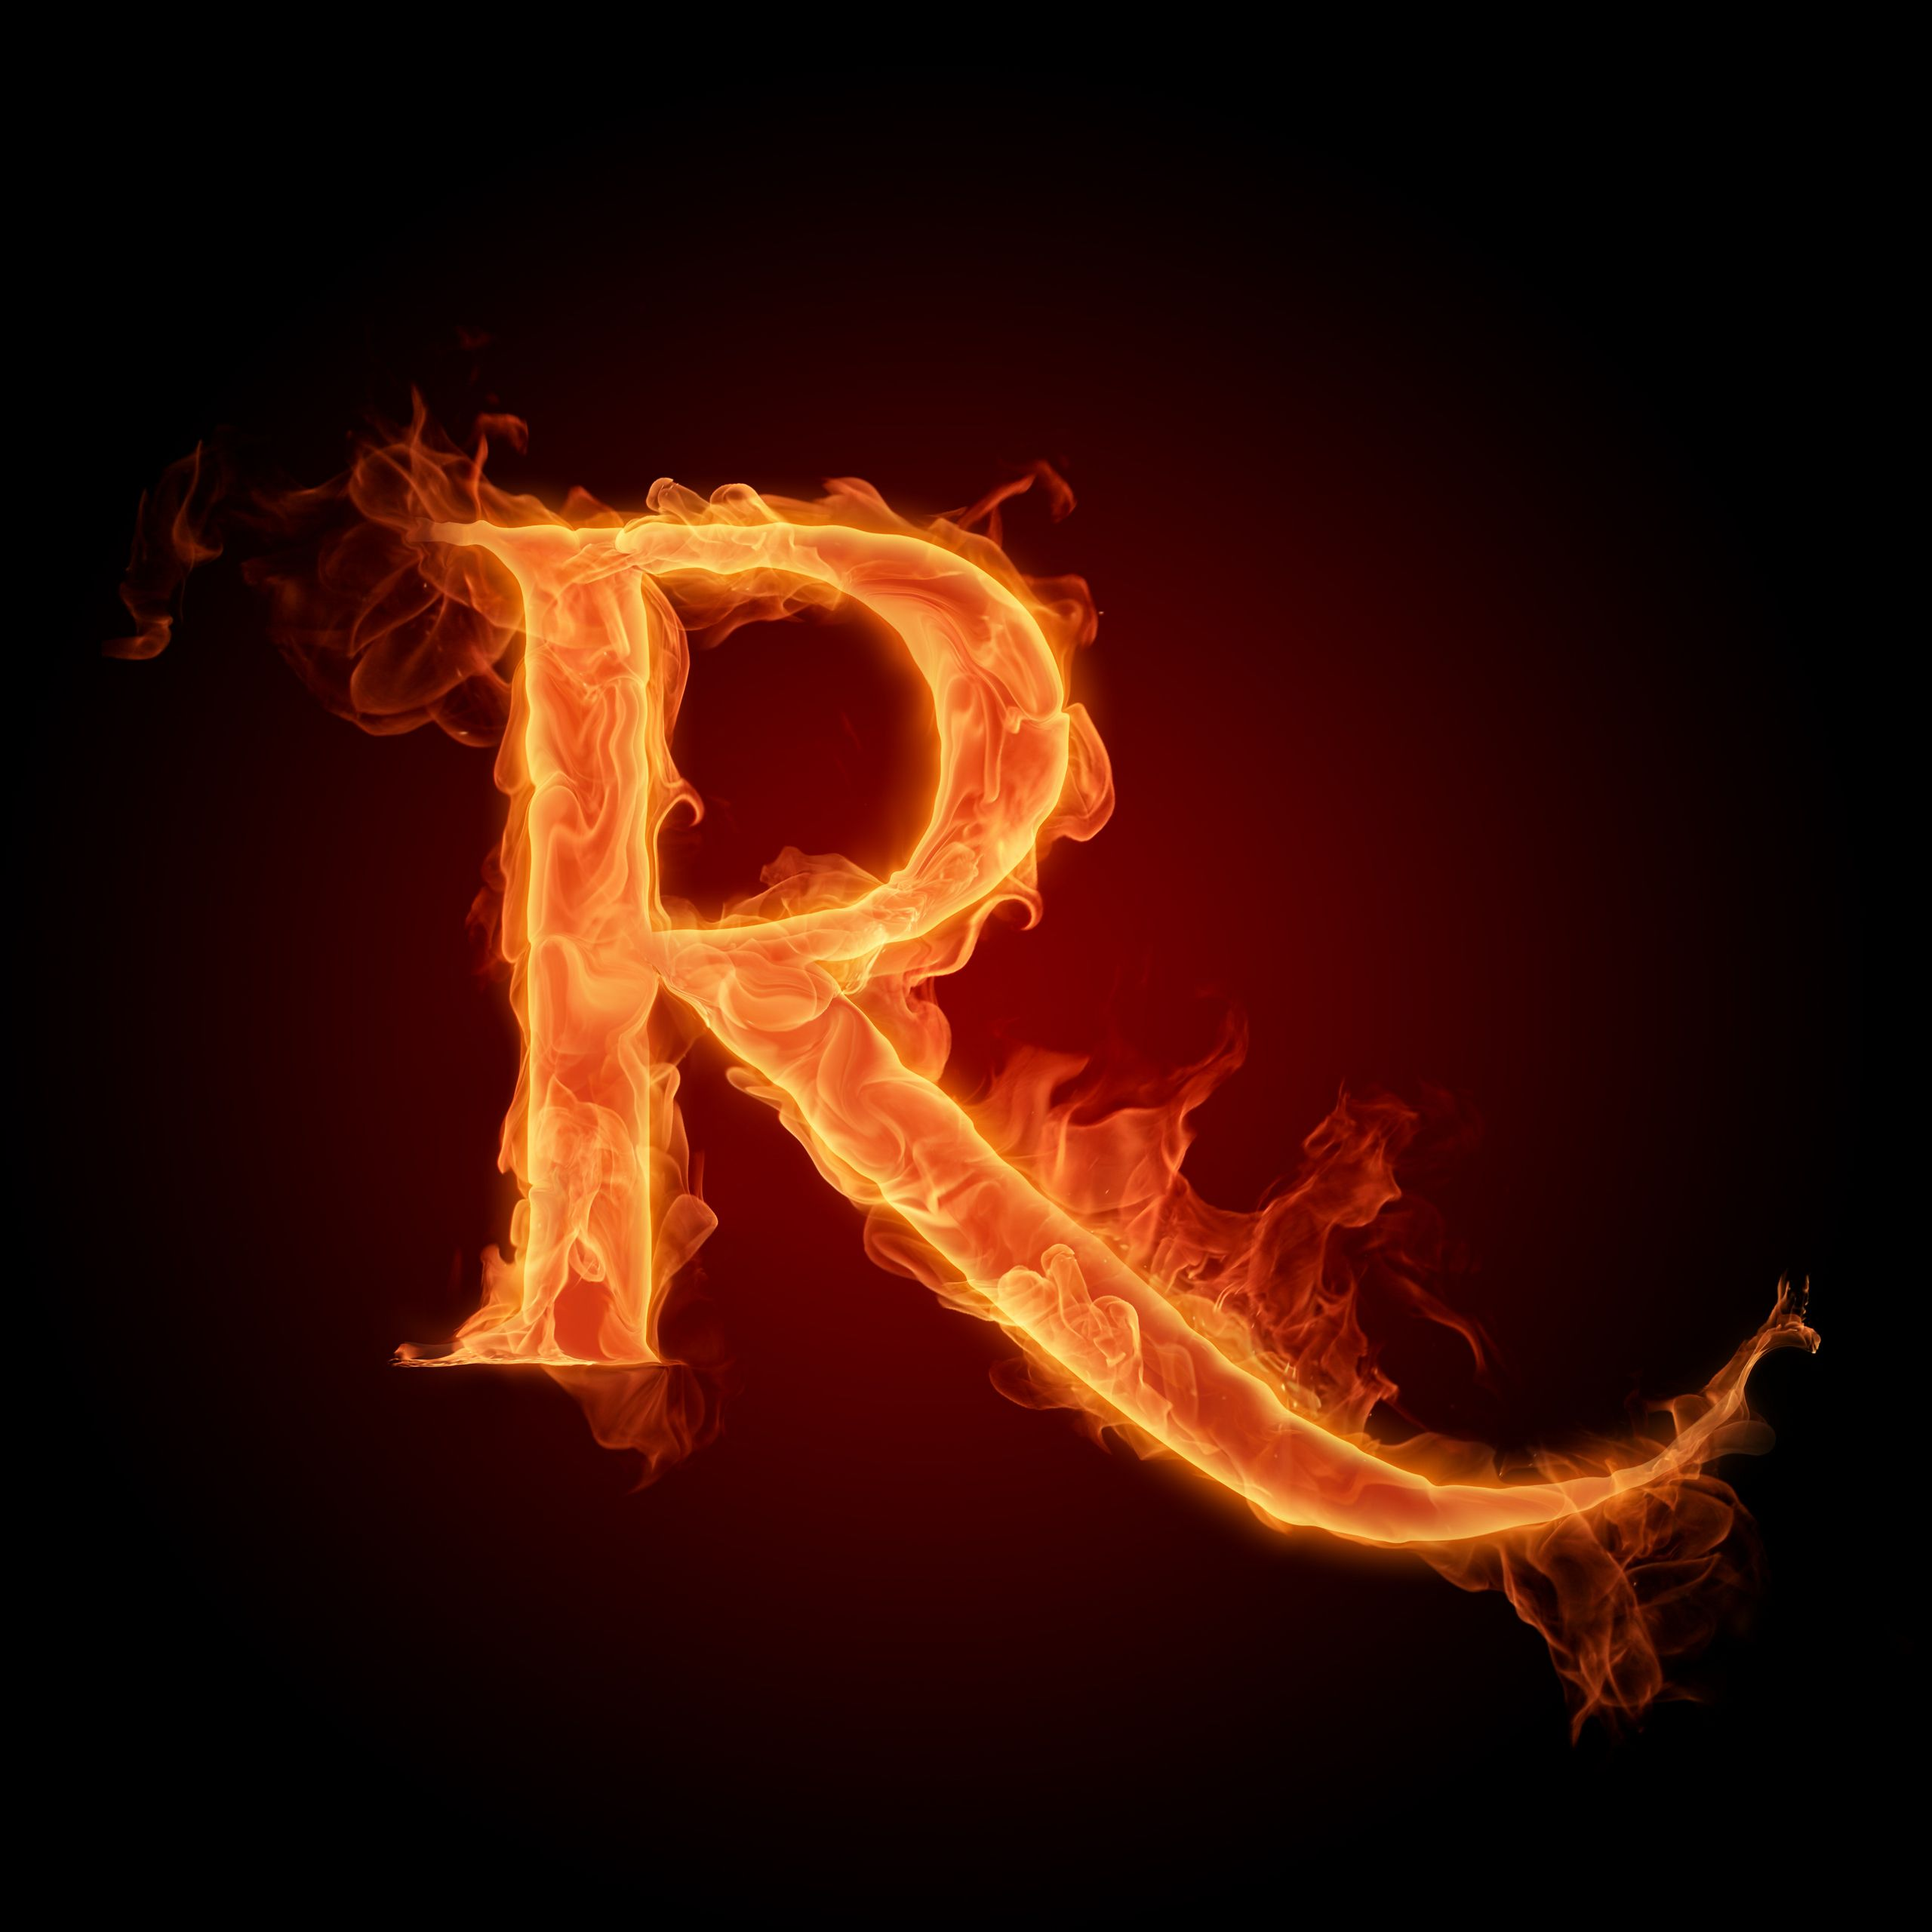 What You Should Know About R Wallpaper